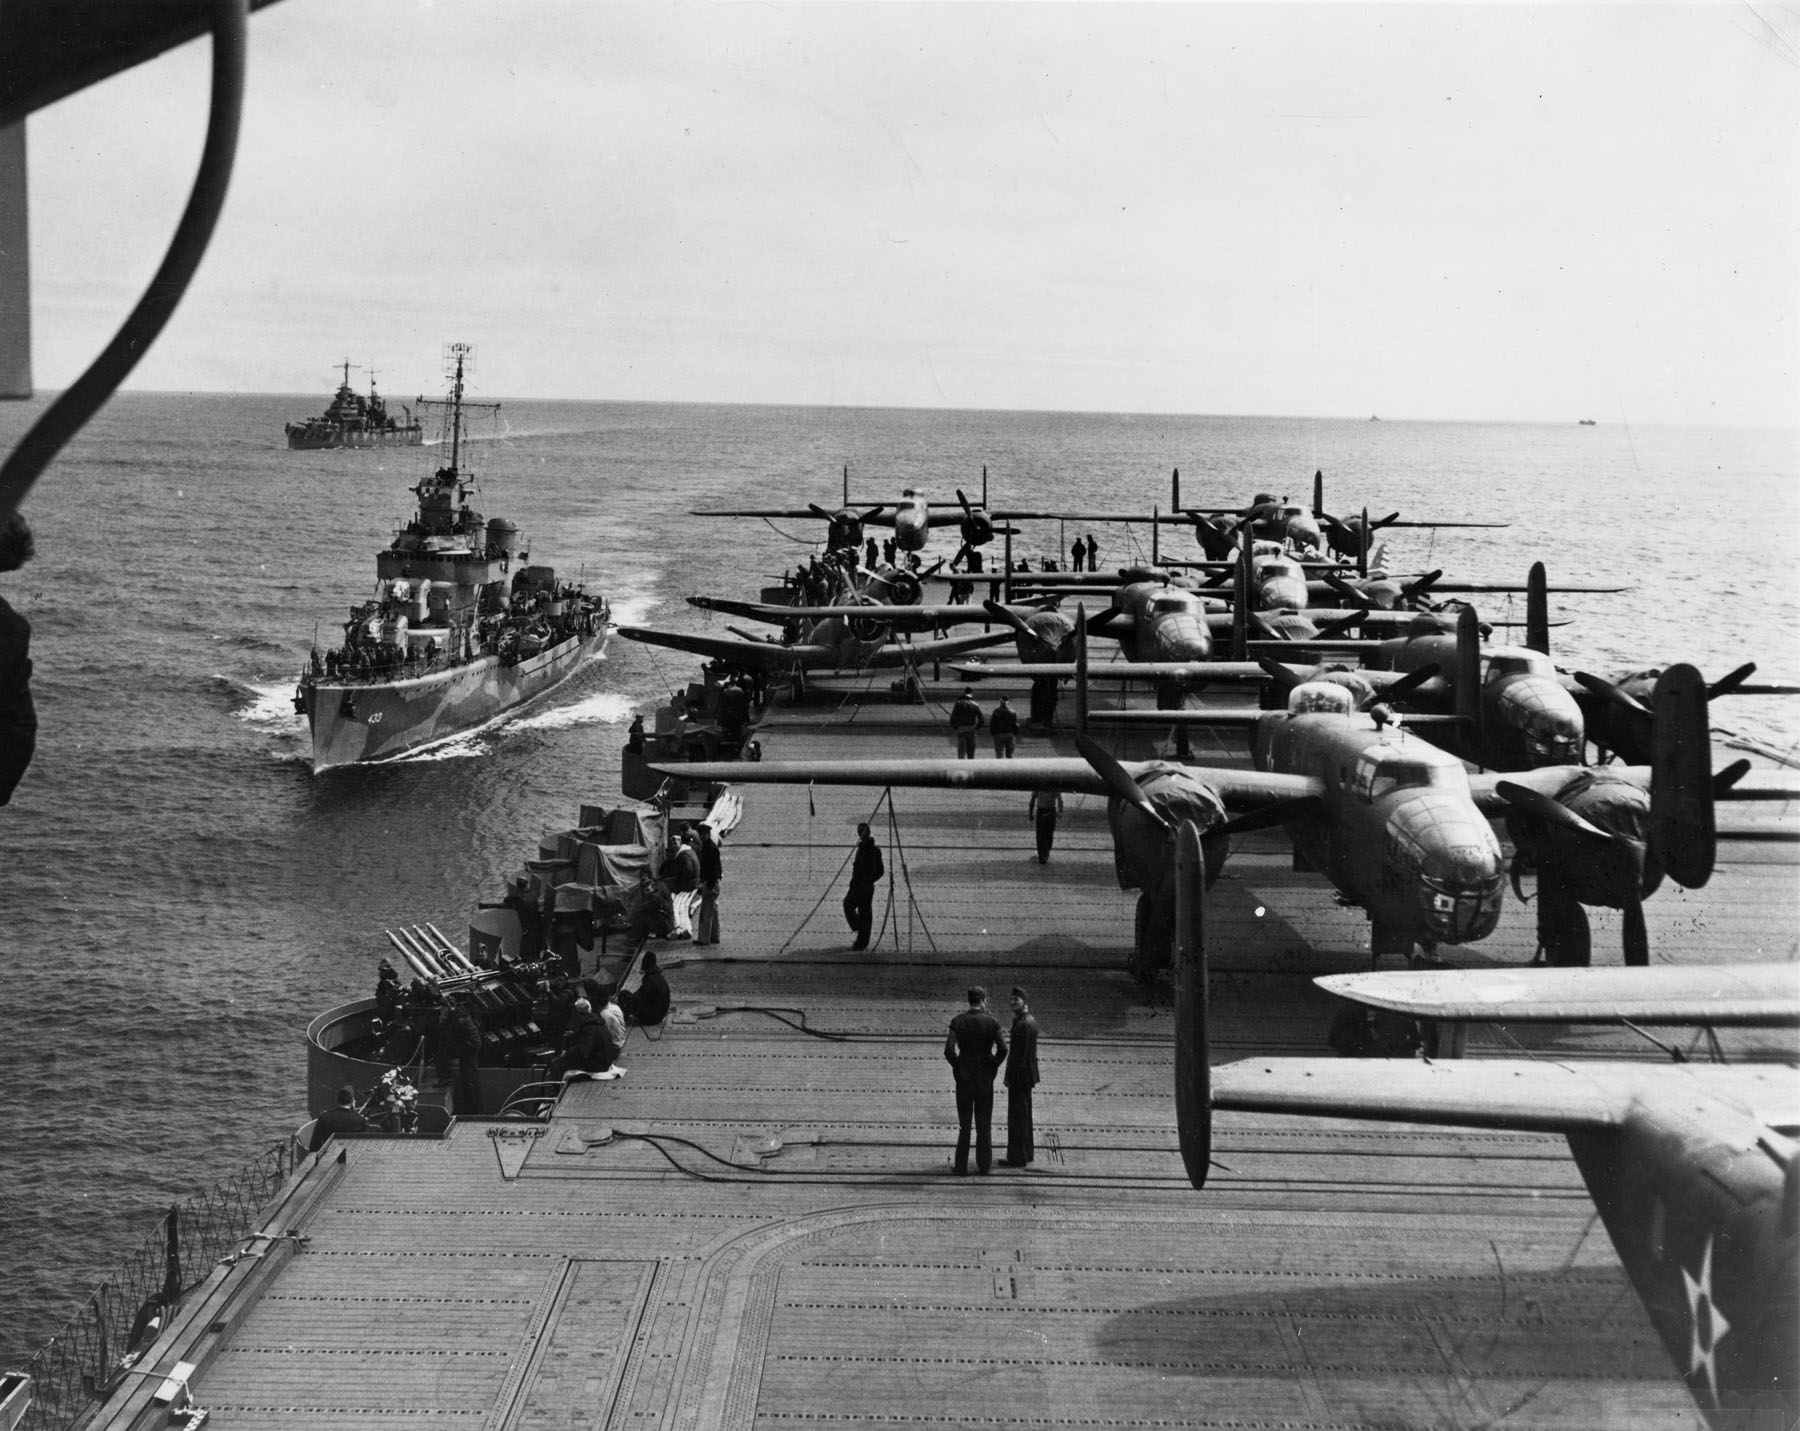 Aft flight deck of carrier USS Hornet en route to the Doolittle Raid, April 1942; destroyer USS Gwin and cruiser USS Nashville in background (US Naval History & Heritage Command)